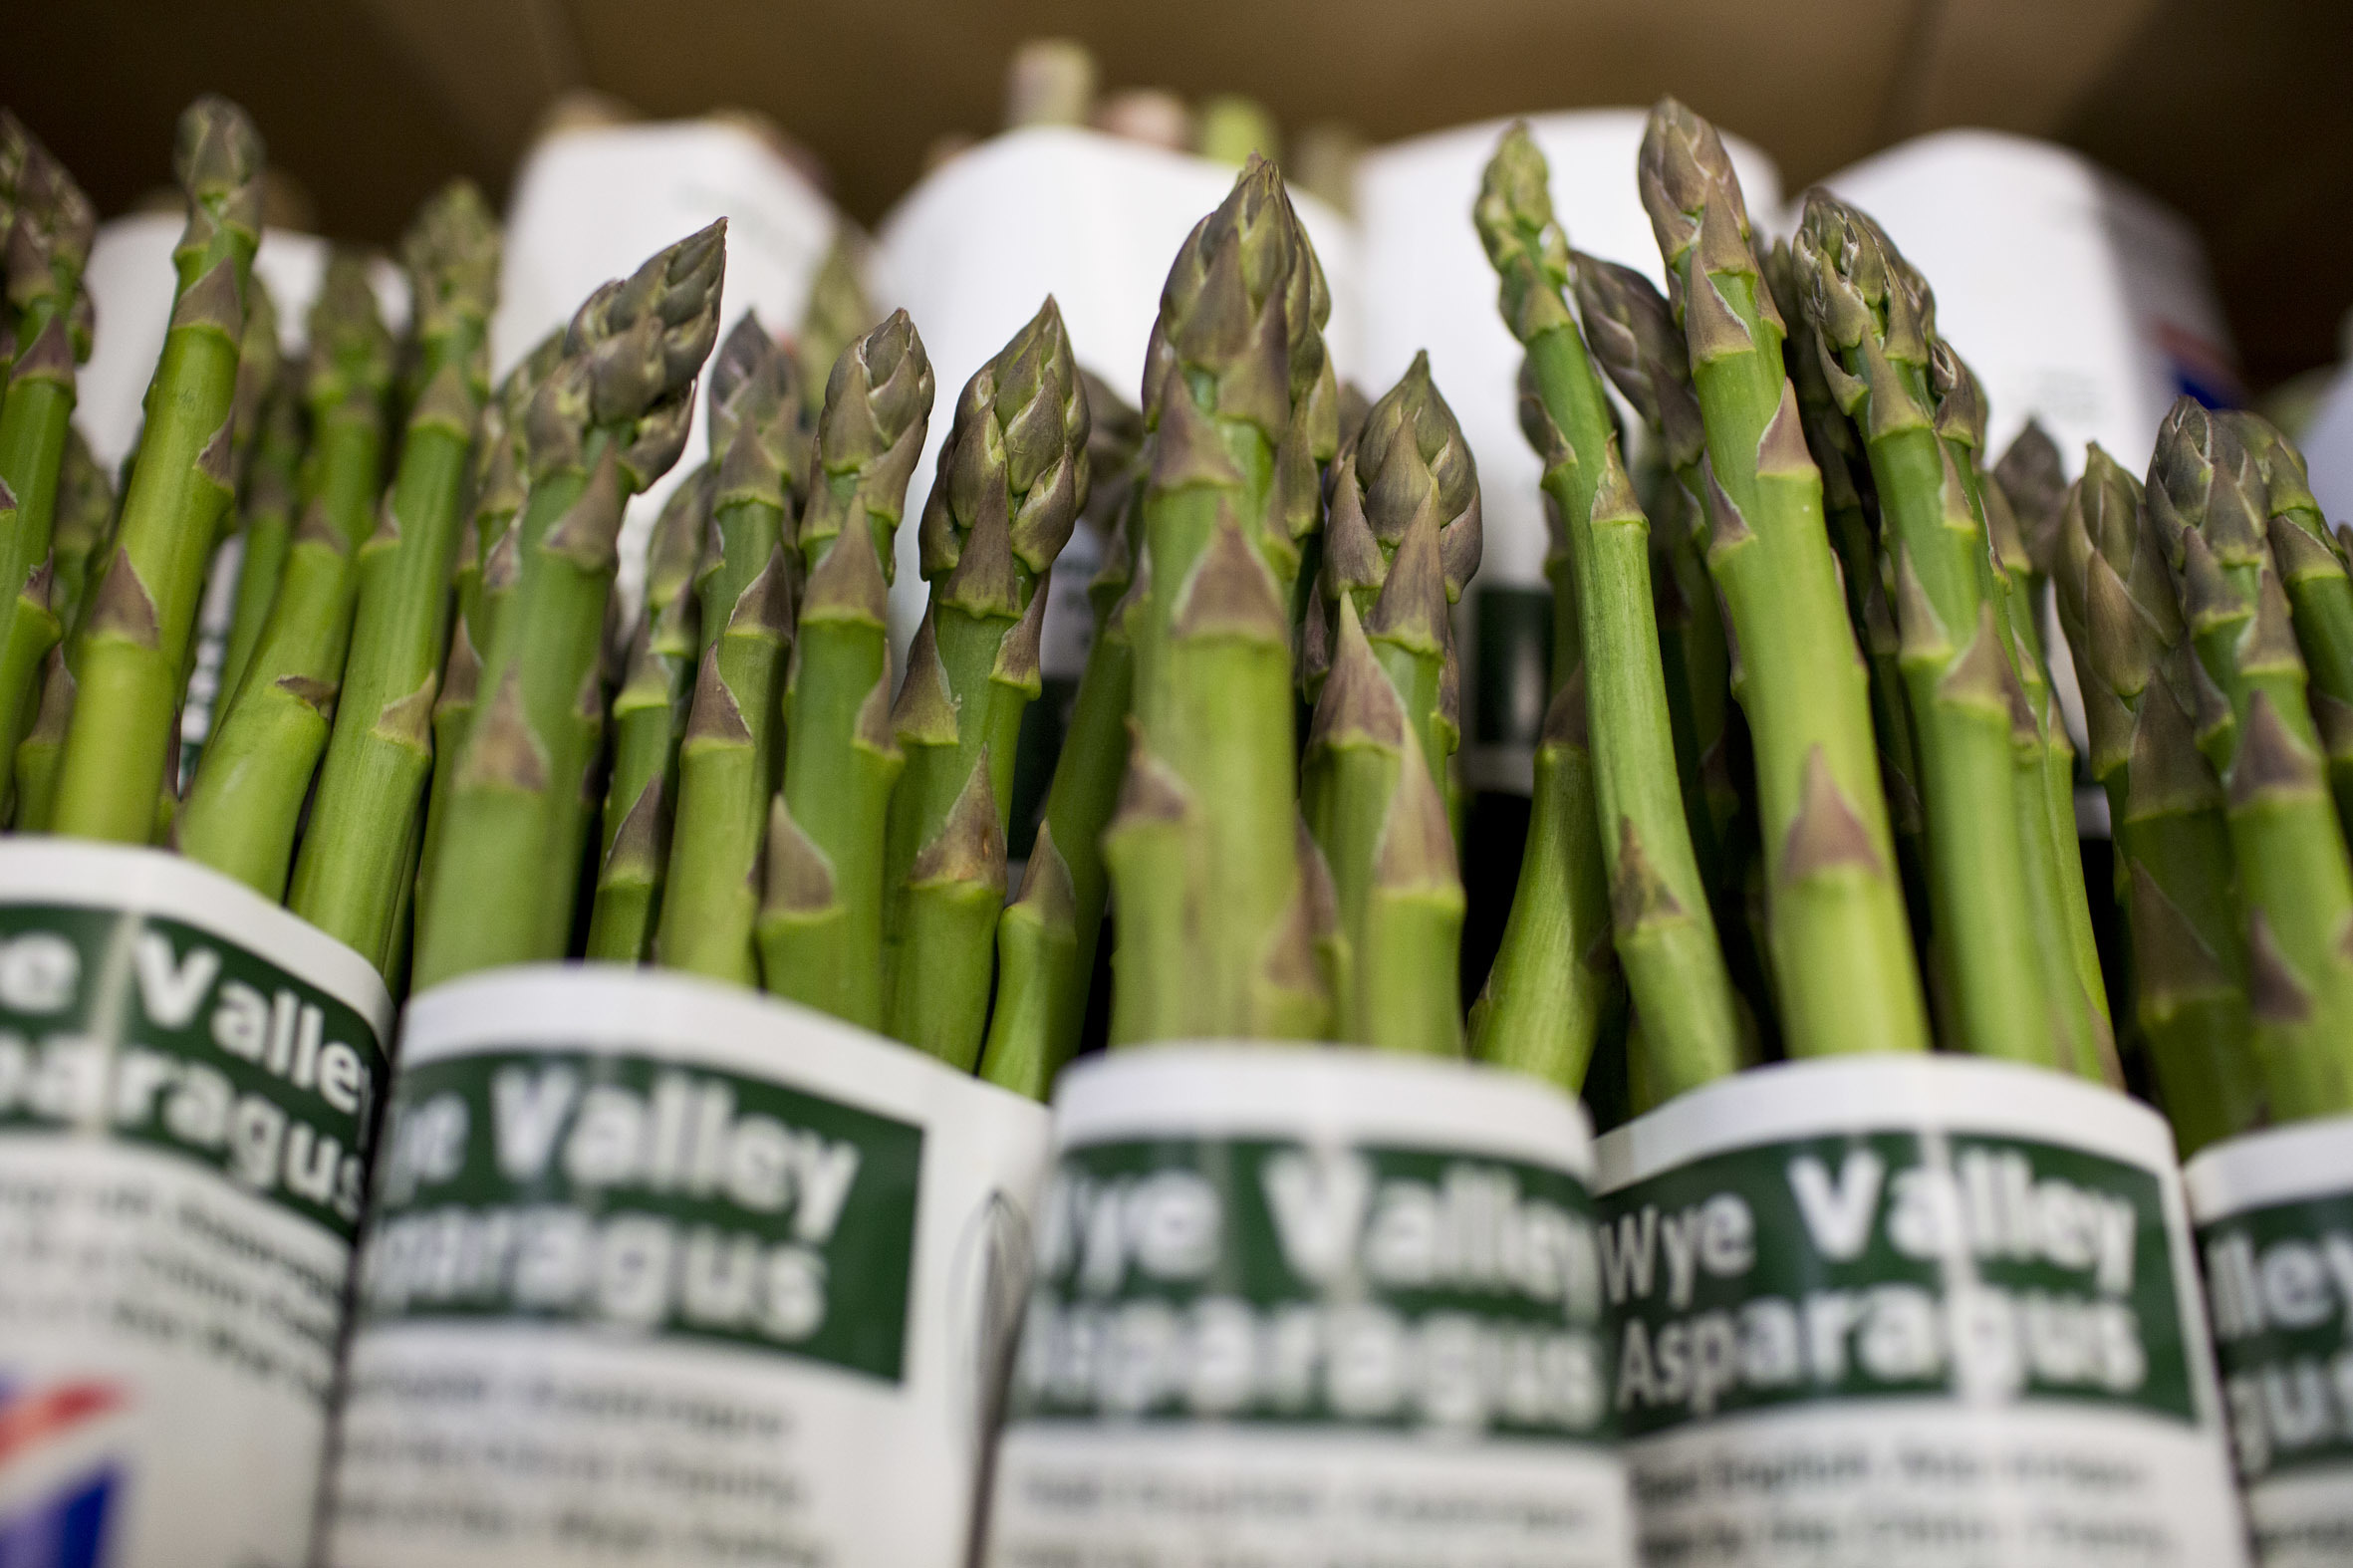 fruit-and-vegetable-market-report-march-2014-asparagus.jpg?mtime=20170922112622#asset:11322